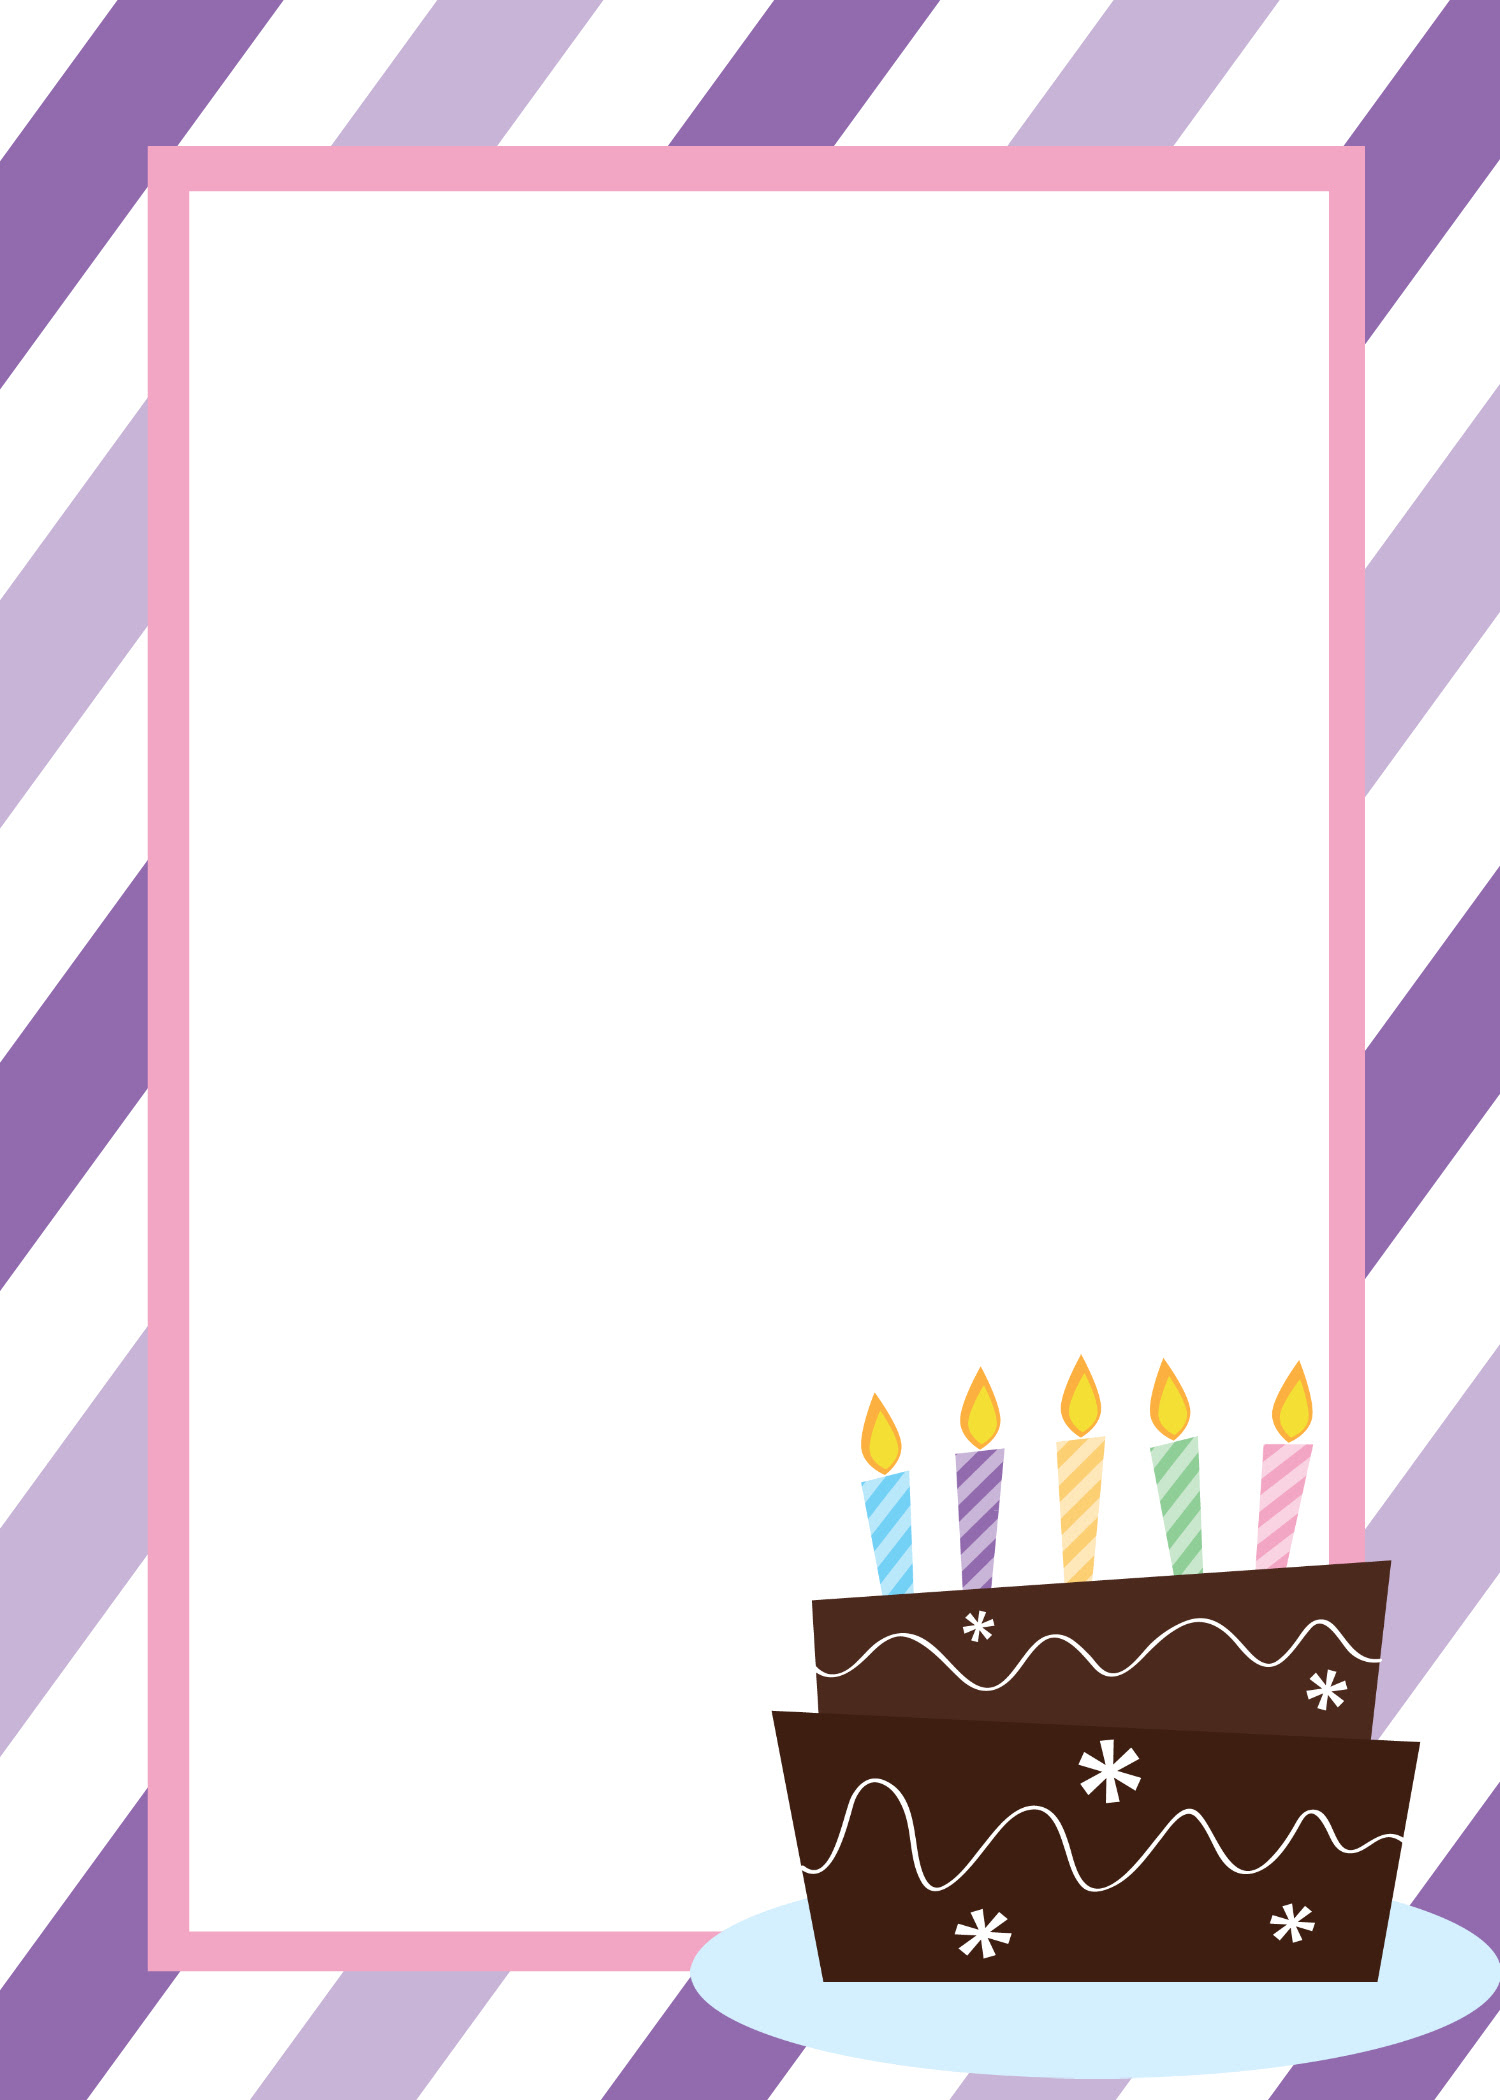 BlankBirthdayInvitationTemplate